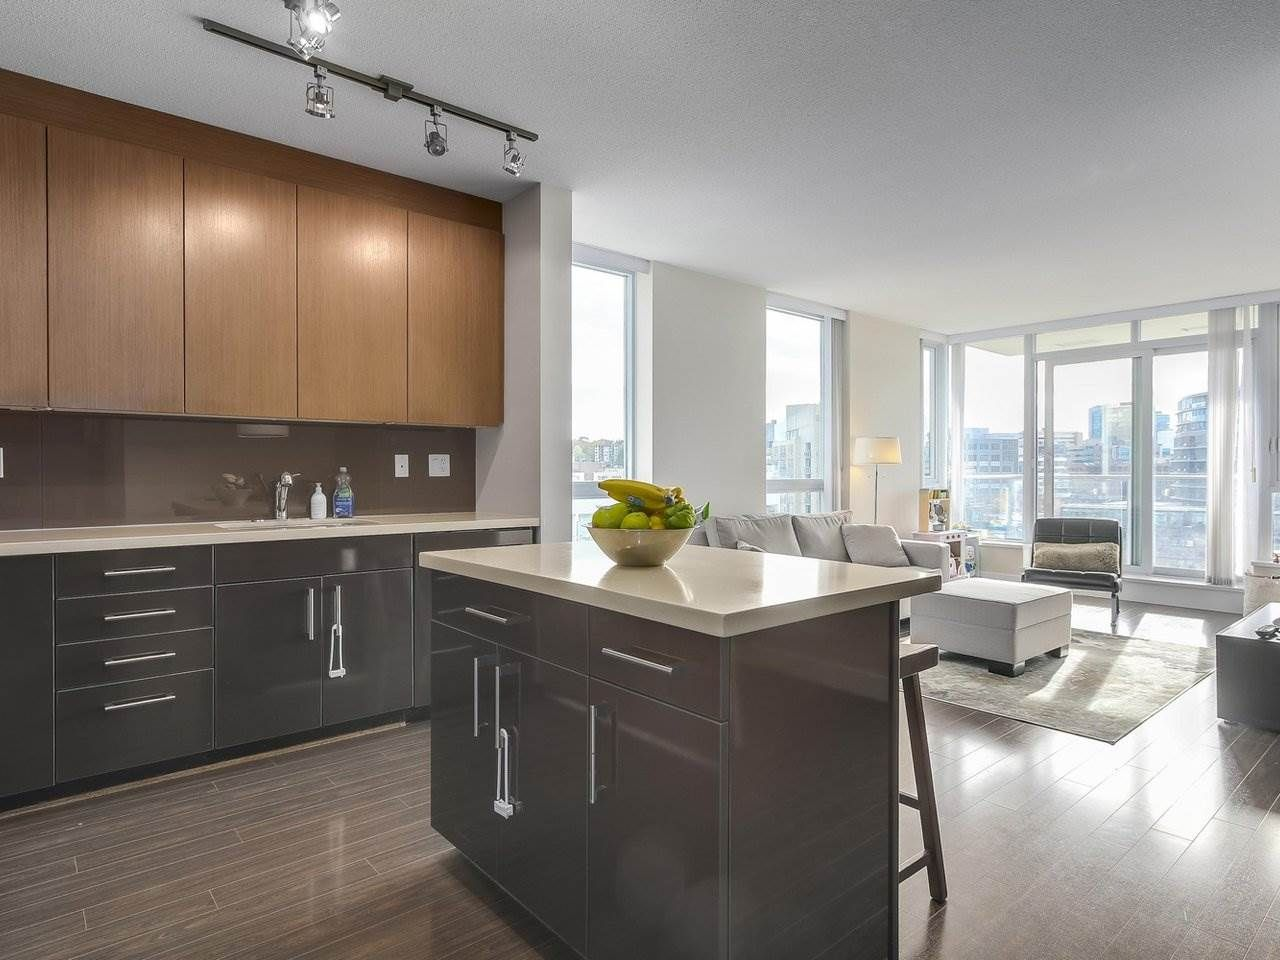 "Main Photo: 907 1833 CROWE Street in Vancouver: False Creek Condo for sale in ""The Foundry"" (Vancouver West)  : MLS®# R2212971"